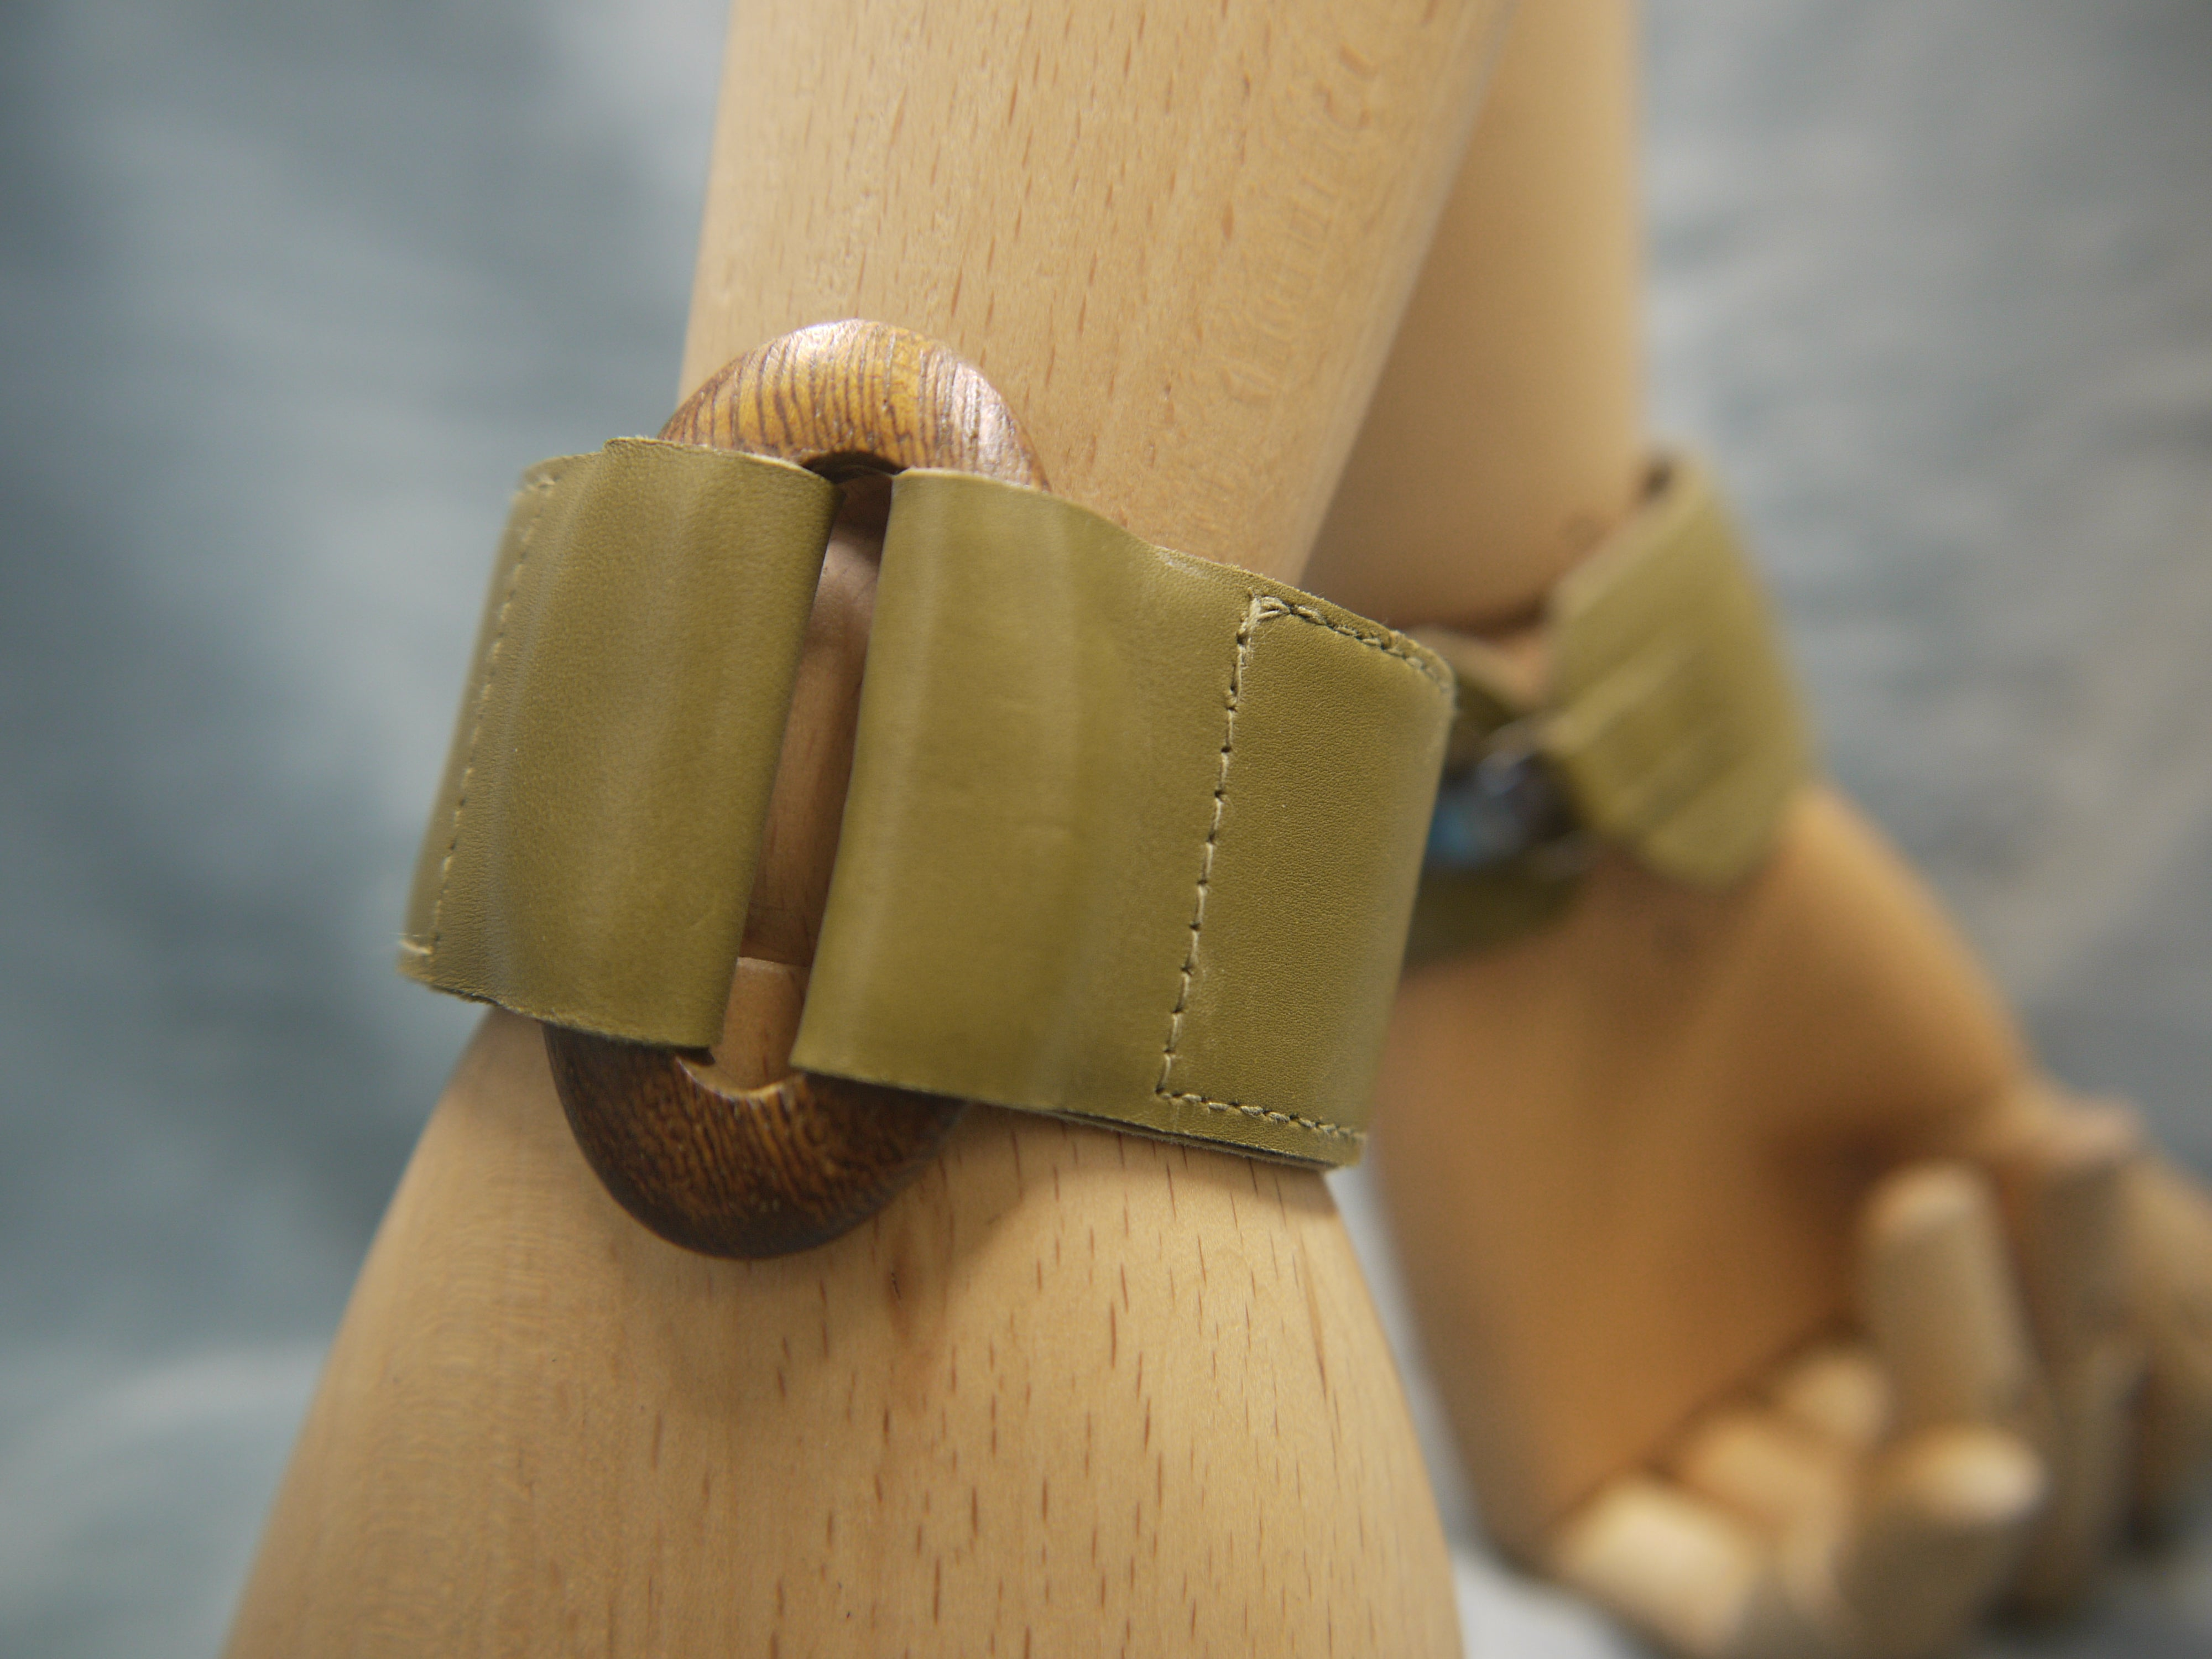 Leather cuff in soft Italian leather in olive green. Central oval element in wood units the two sections on the leather cuff